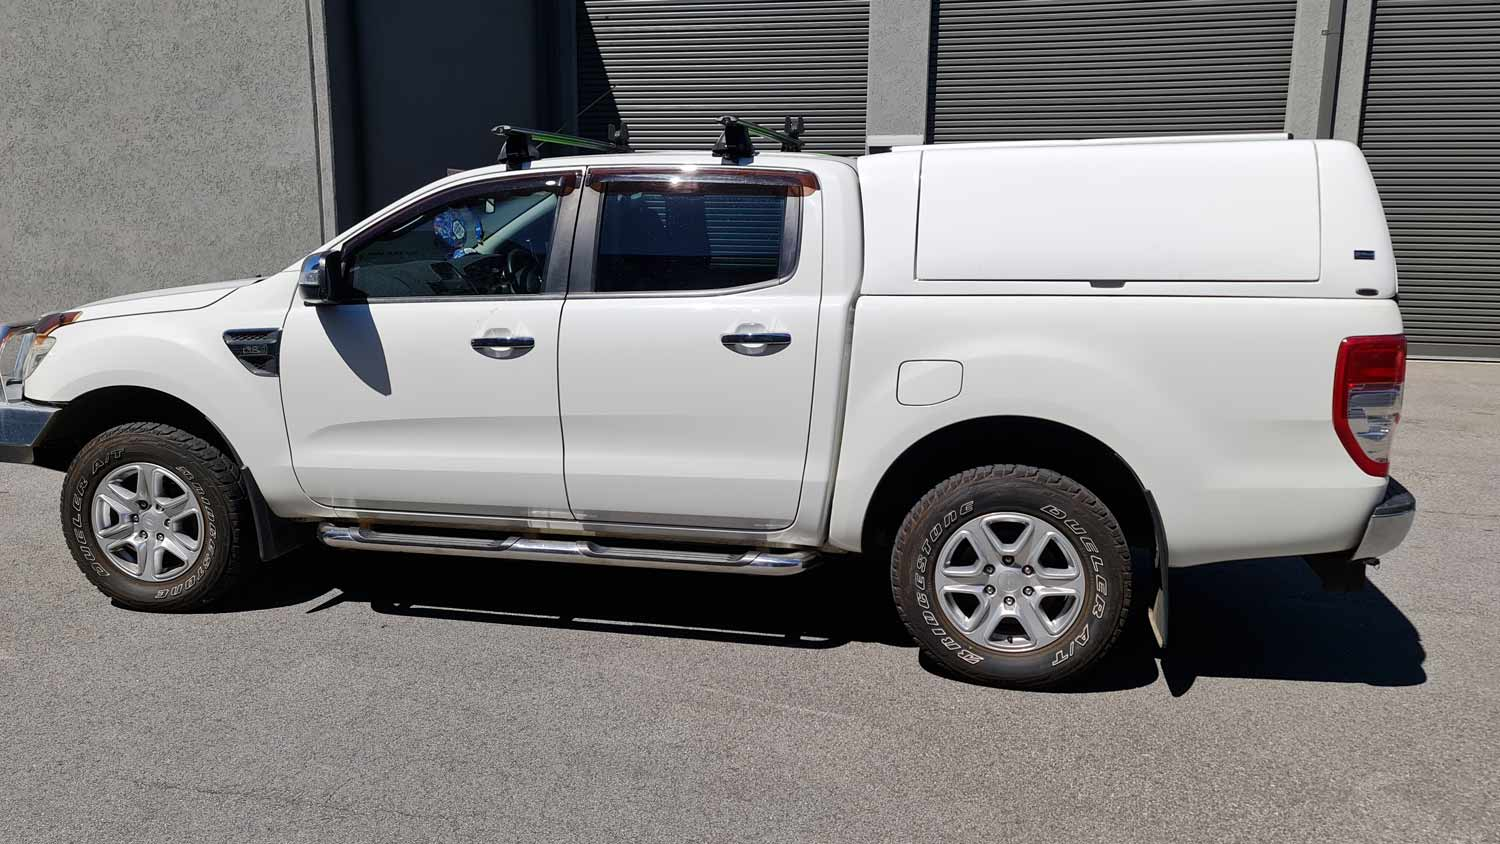 Force Pro Canopy on Ford Ranger 2016 - delux 3x4 - image 2